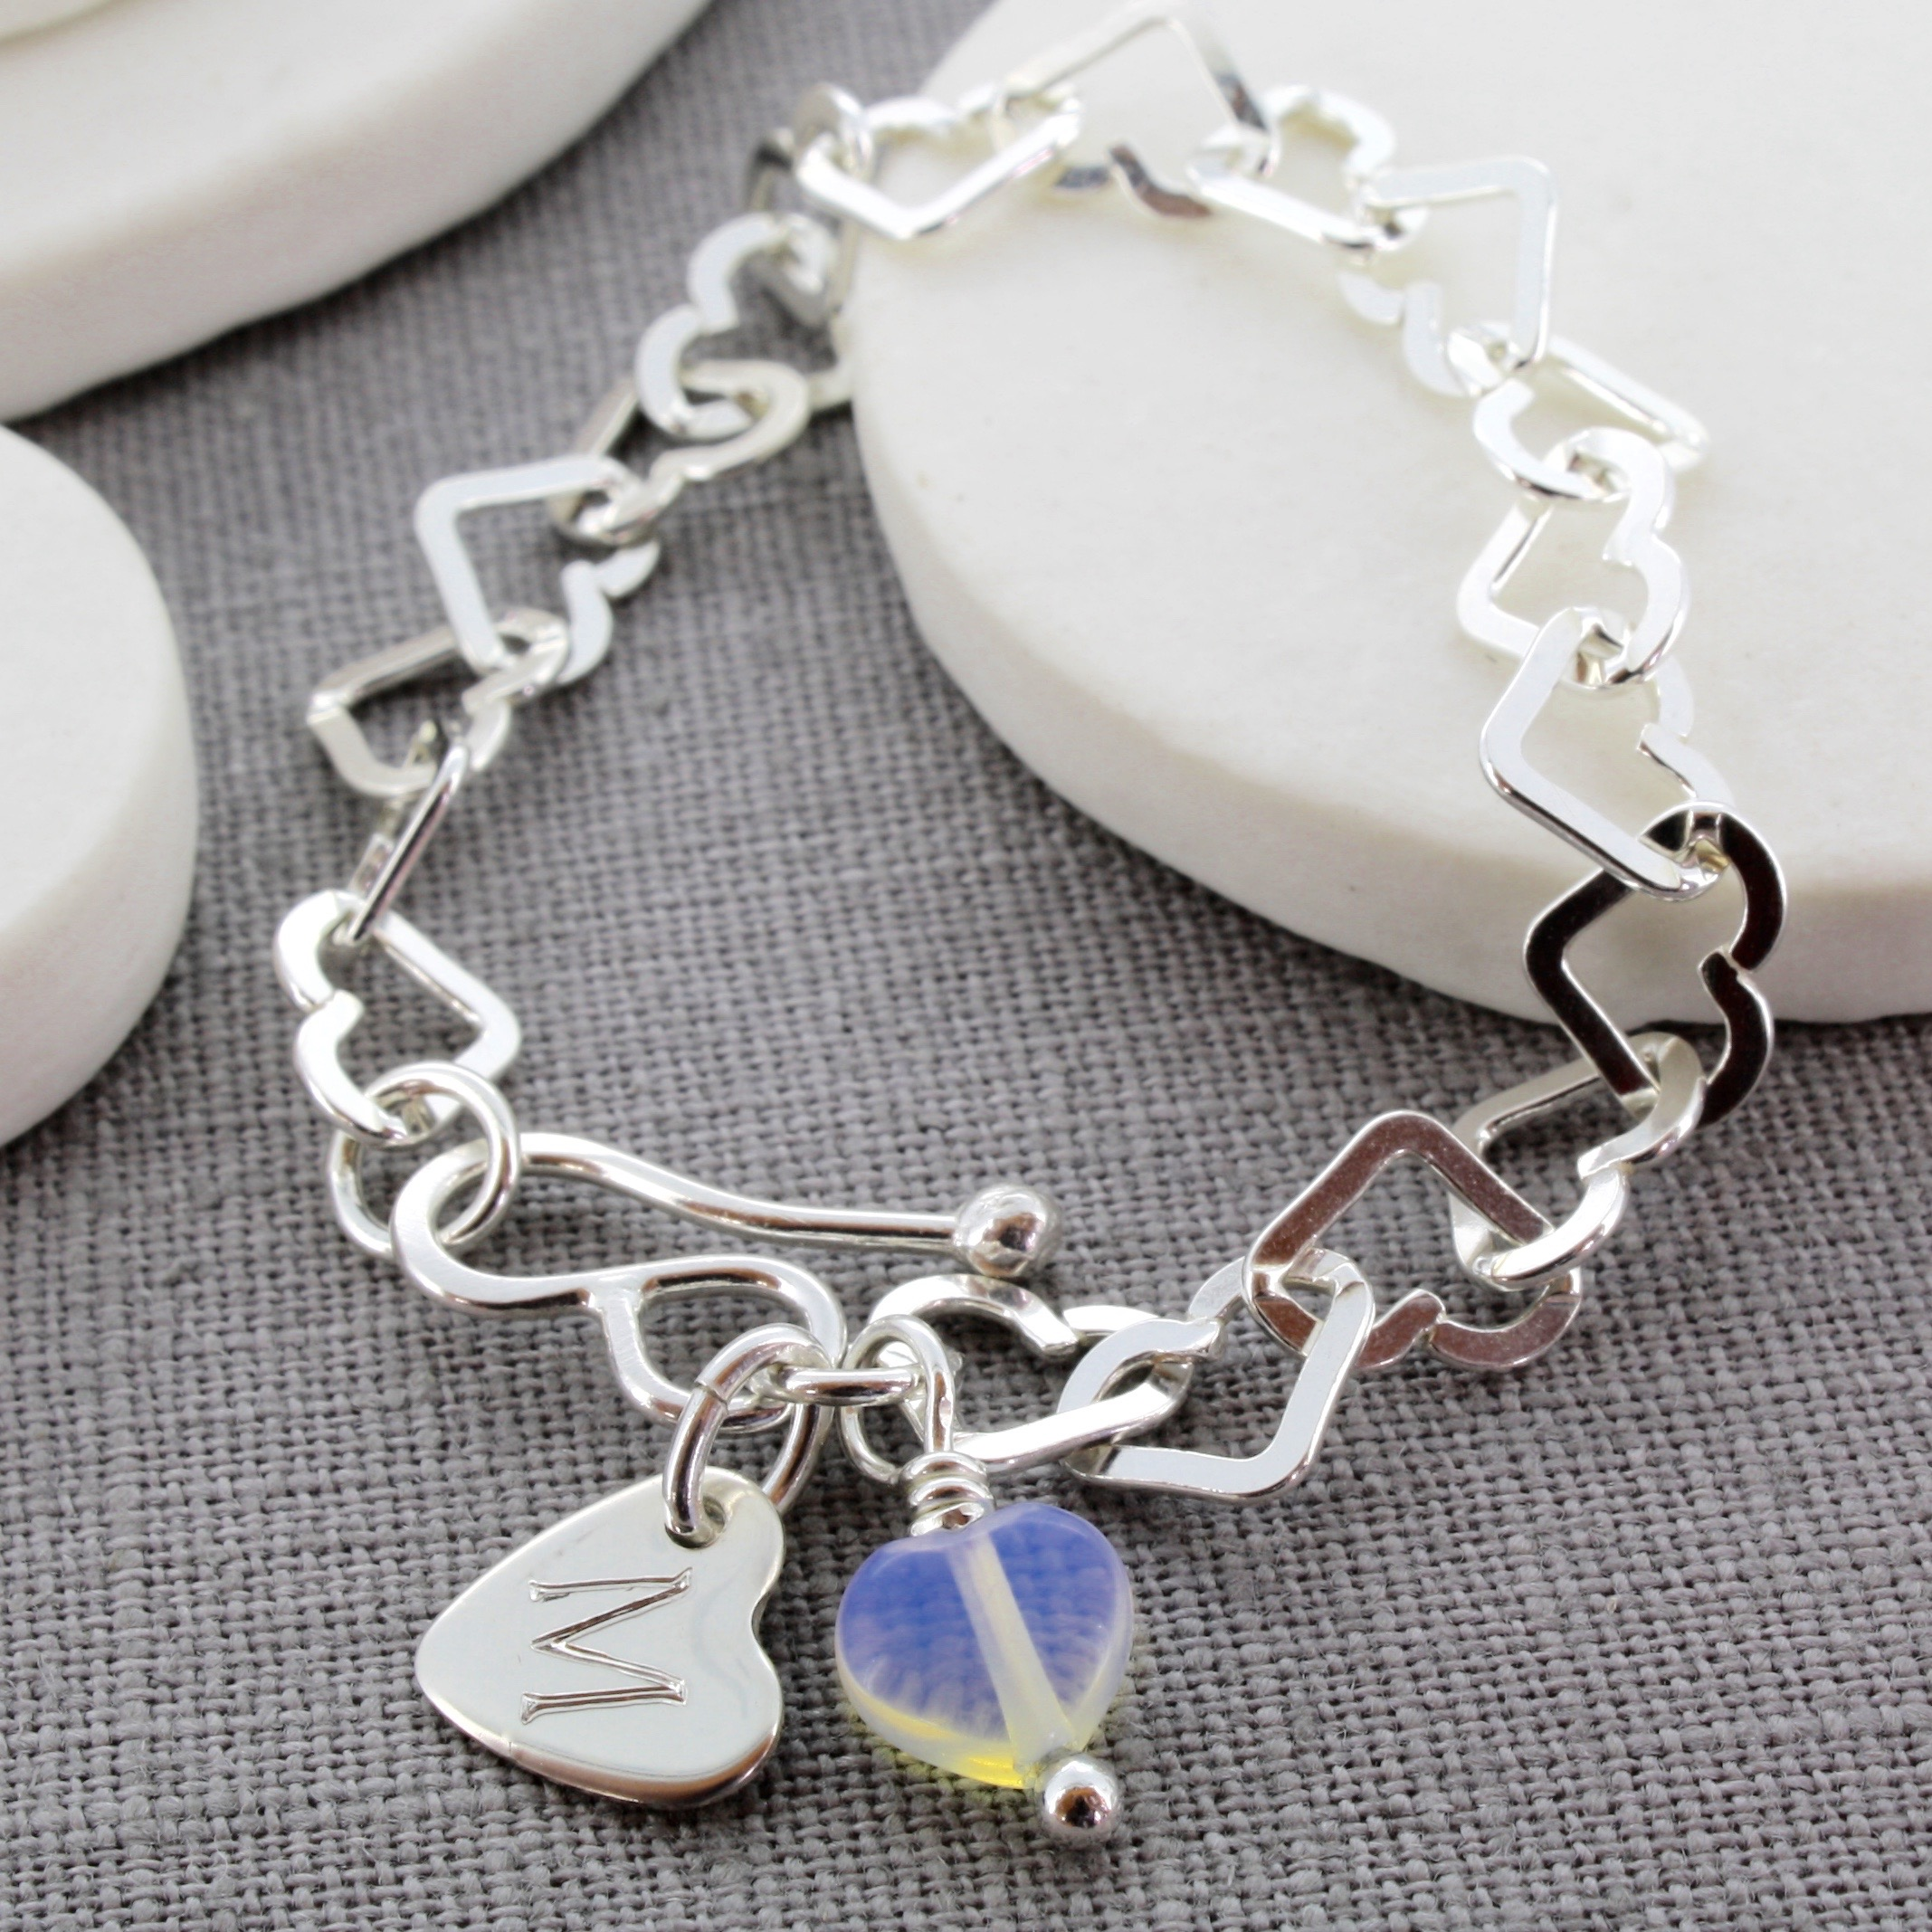 Personalised child's heart bracelet with moonstone